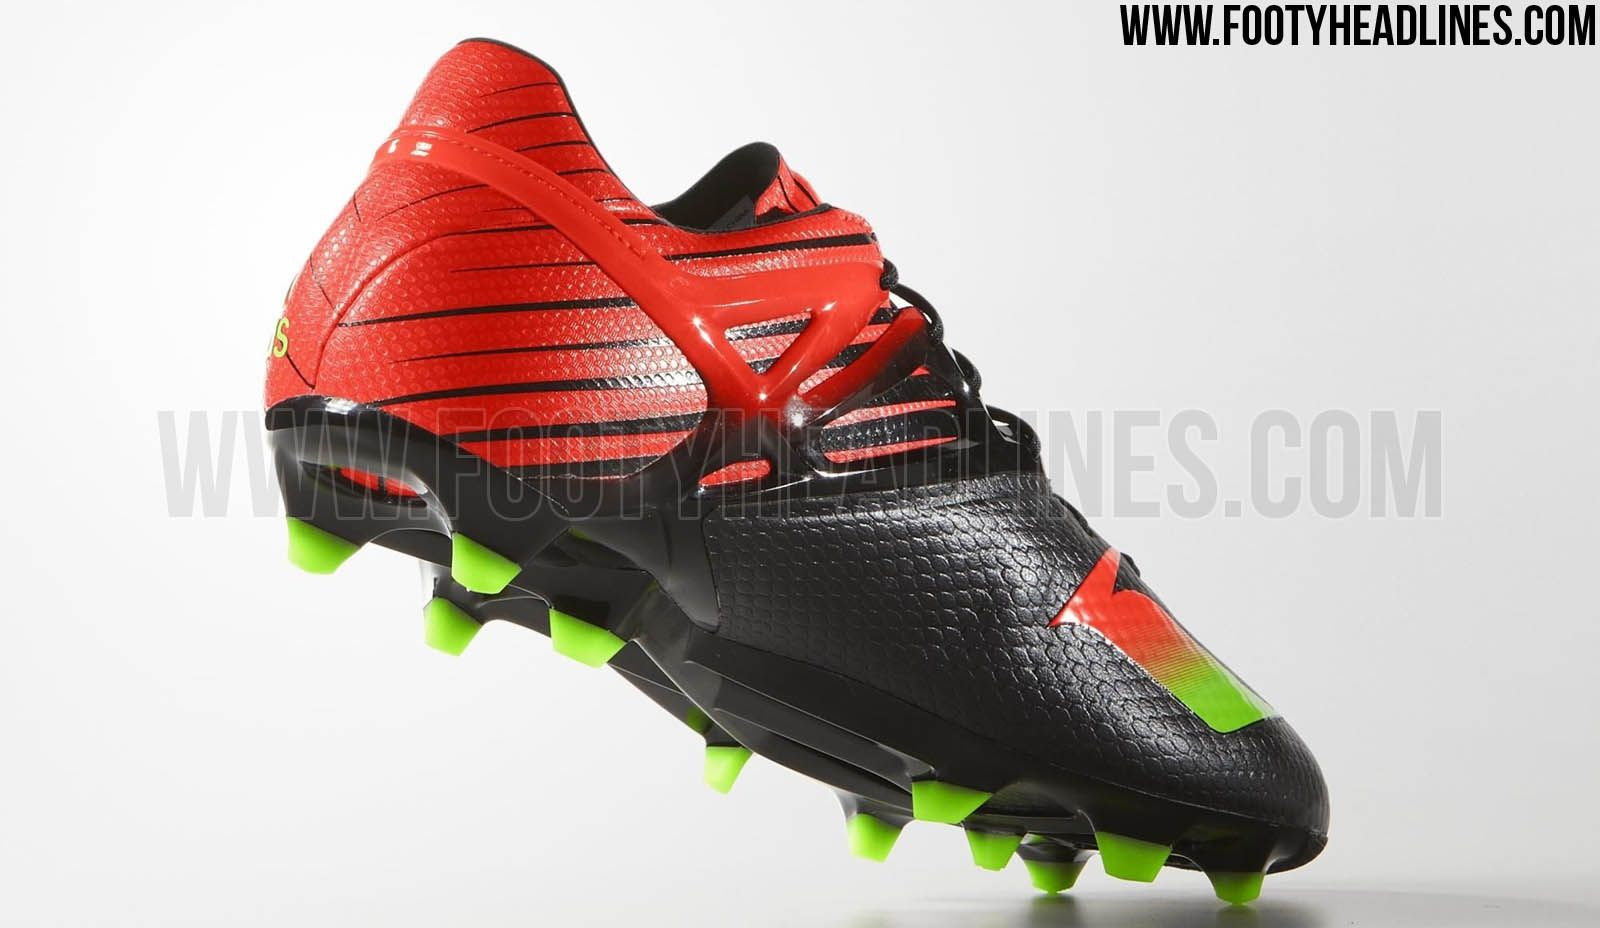 Striking Adidas Messi 2015 2016 Boots Leaked   Footy Headlines